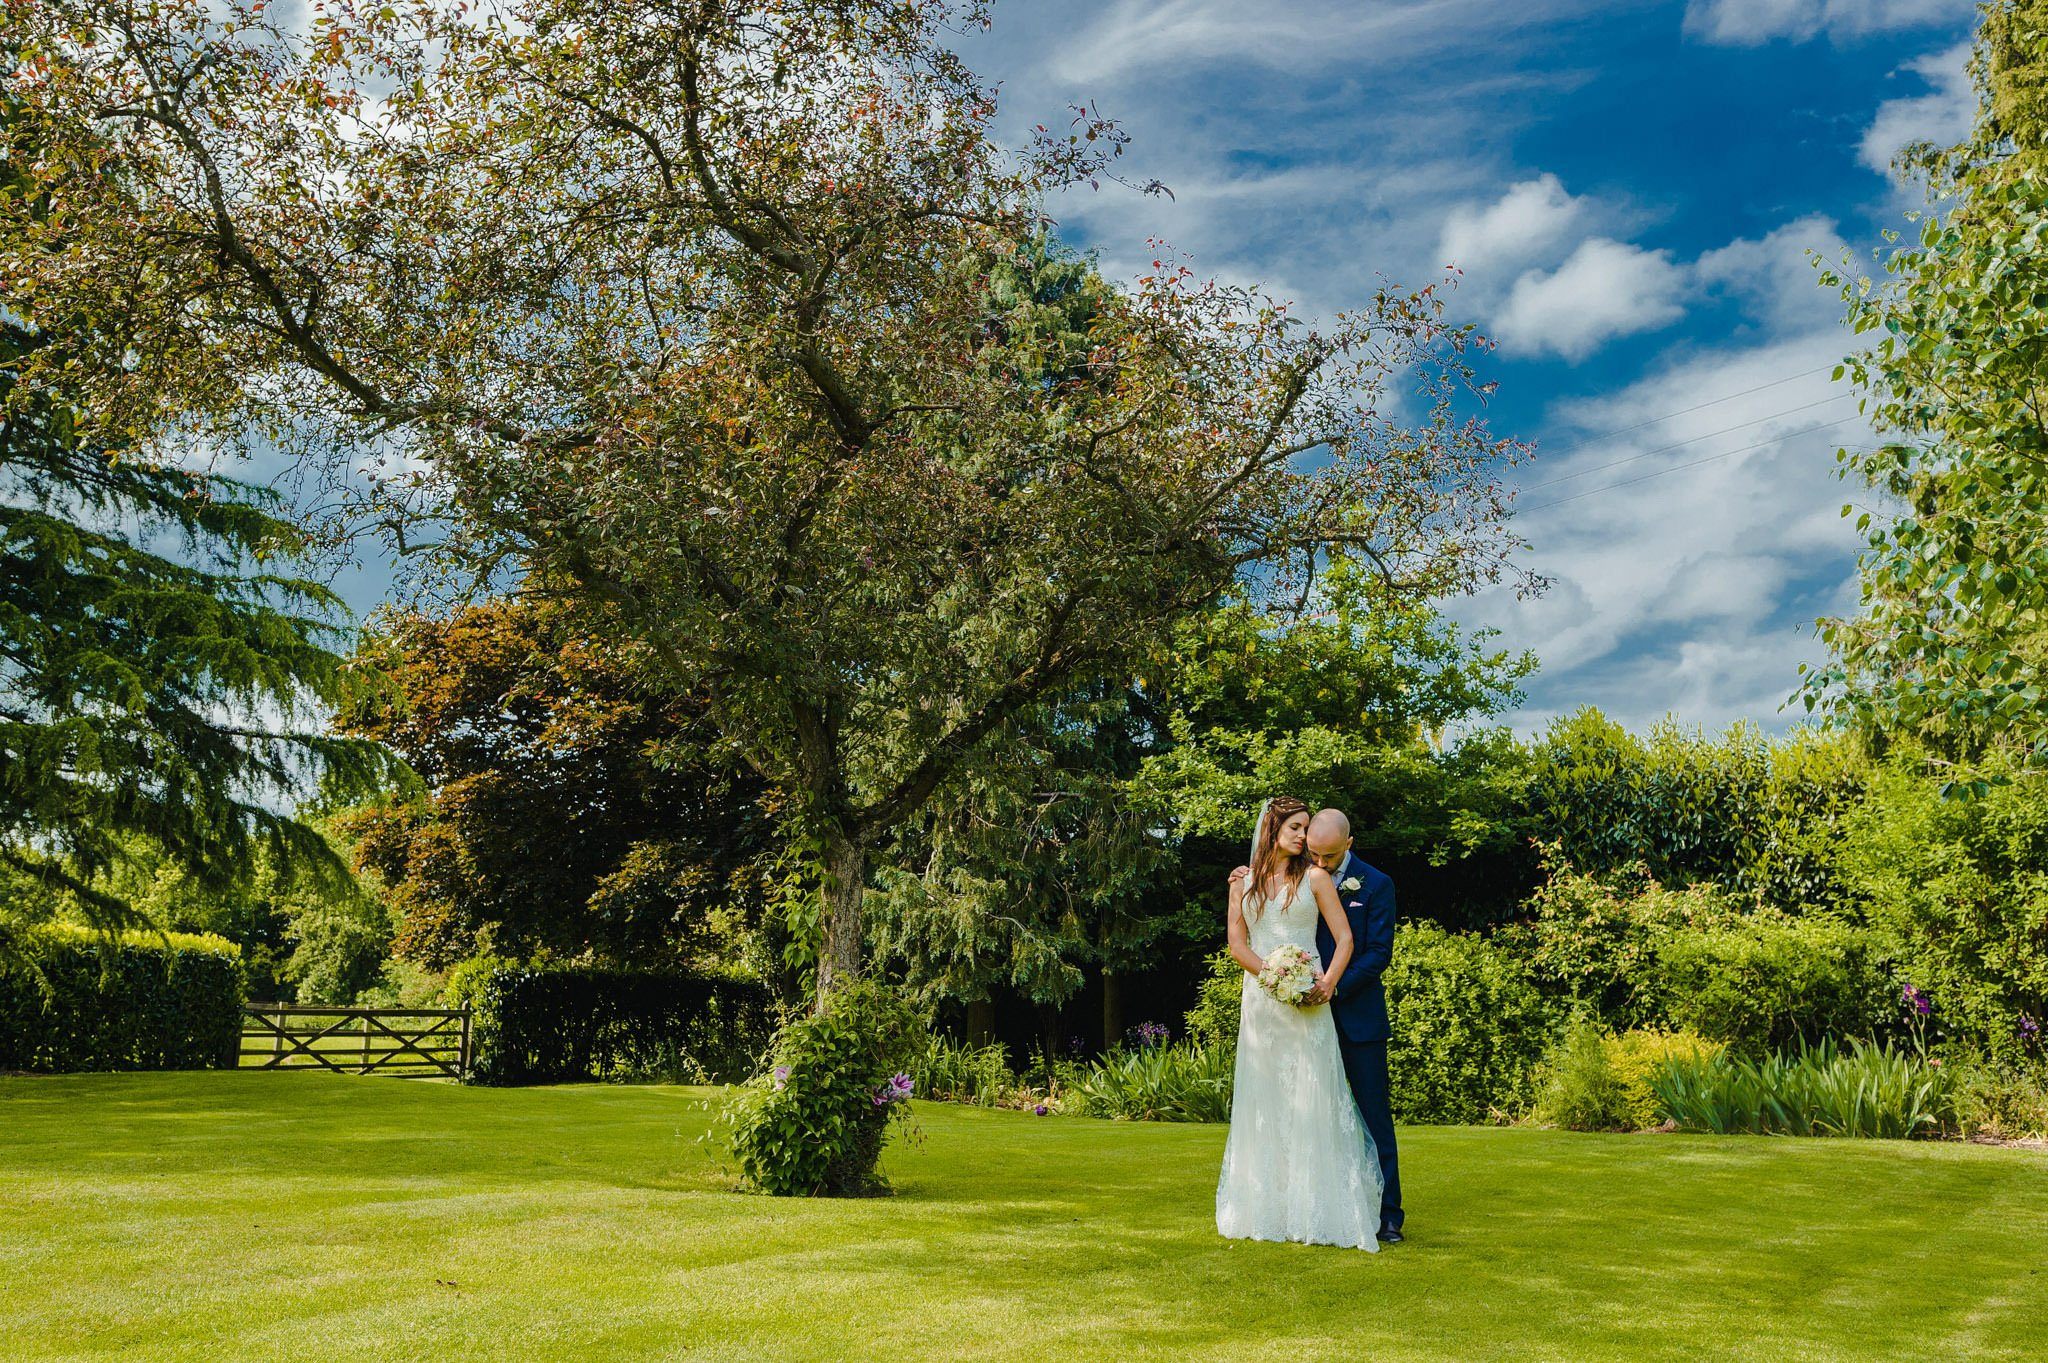 wedding at redhouse barn 135 - Wedding at Redhouse Barn in Stoke Prior, Worcestershire